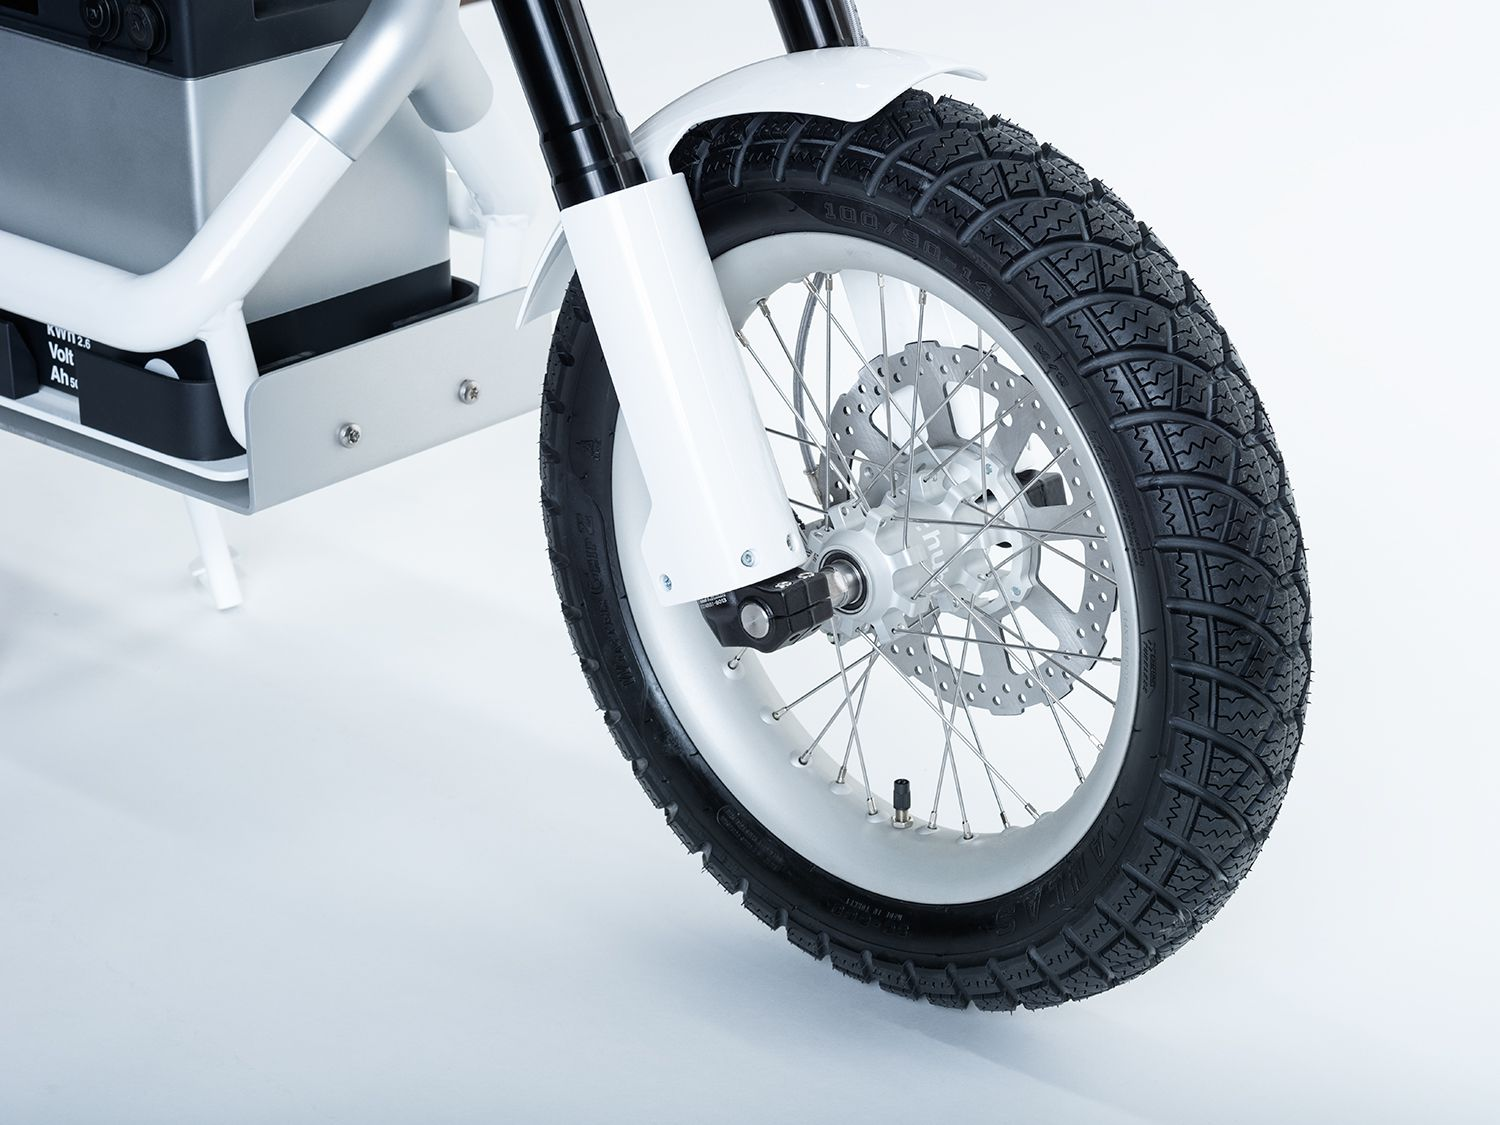 Disc brakes and motorcycle forks.